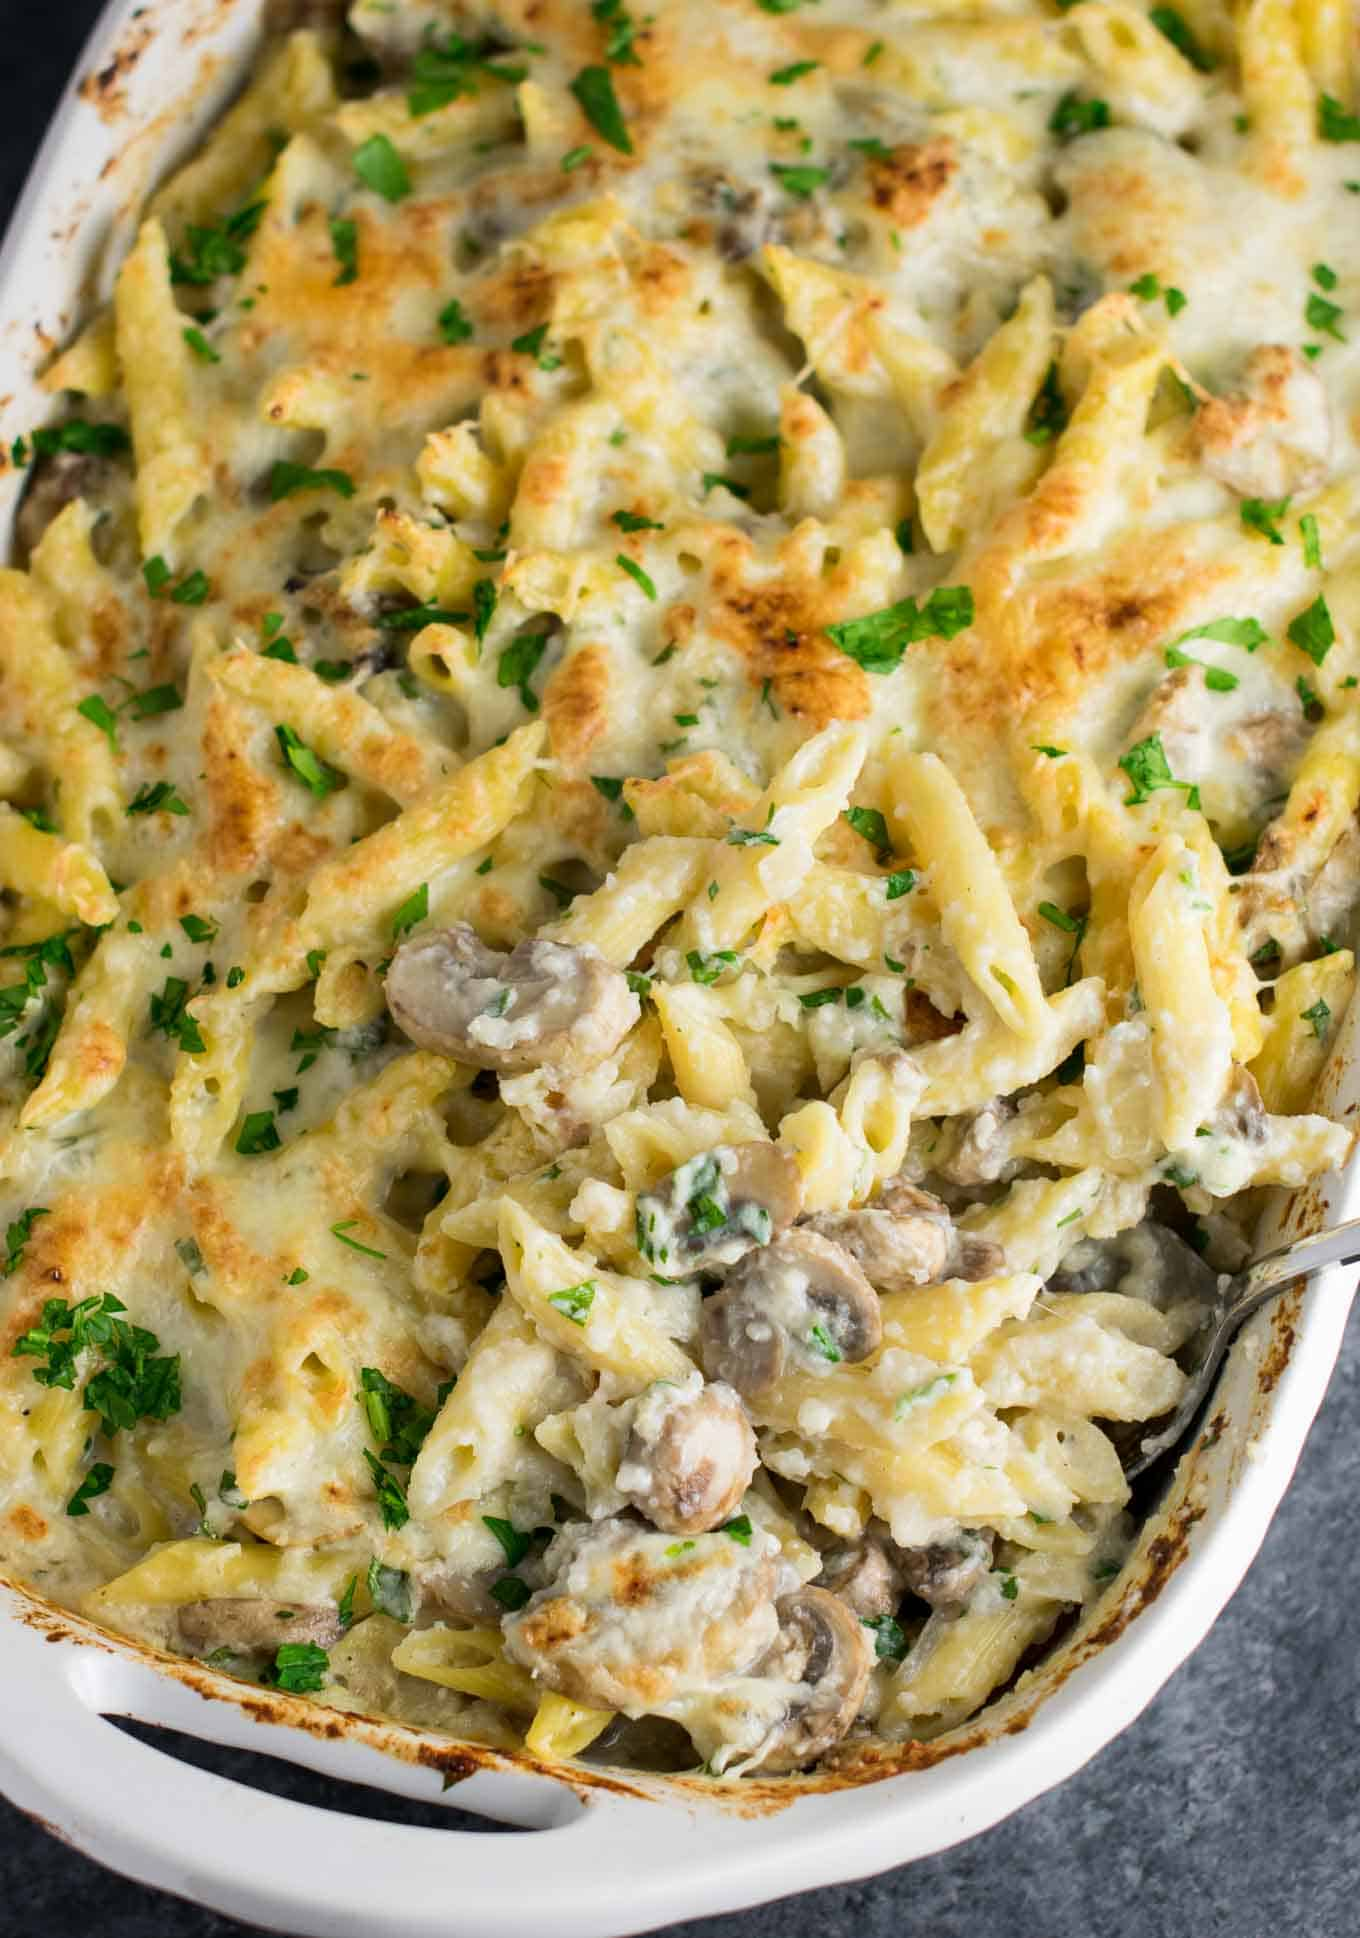 How to make a cream sauce for pasta bake